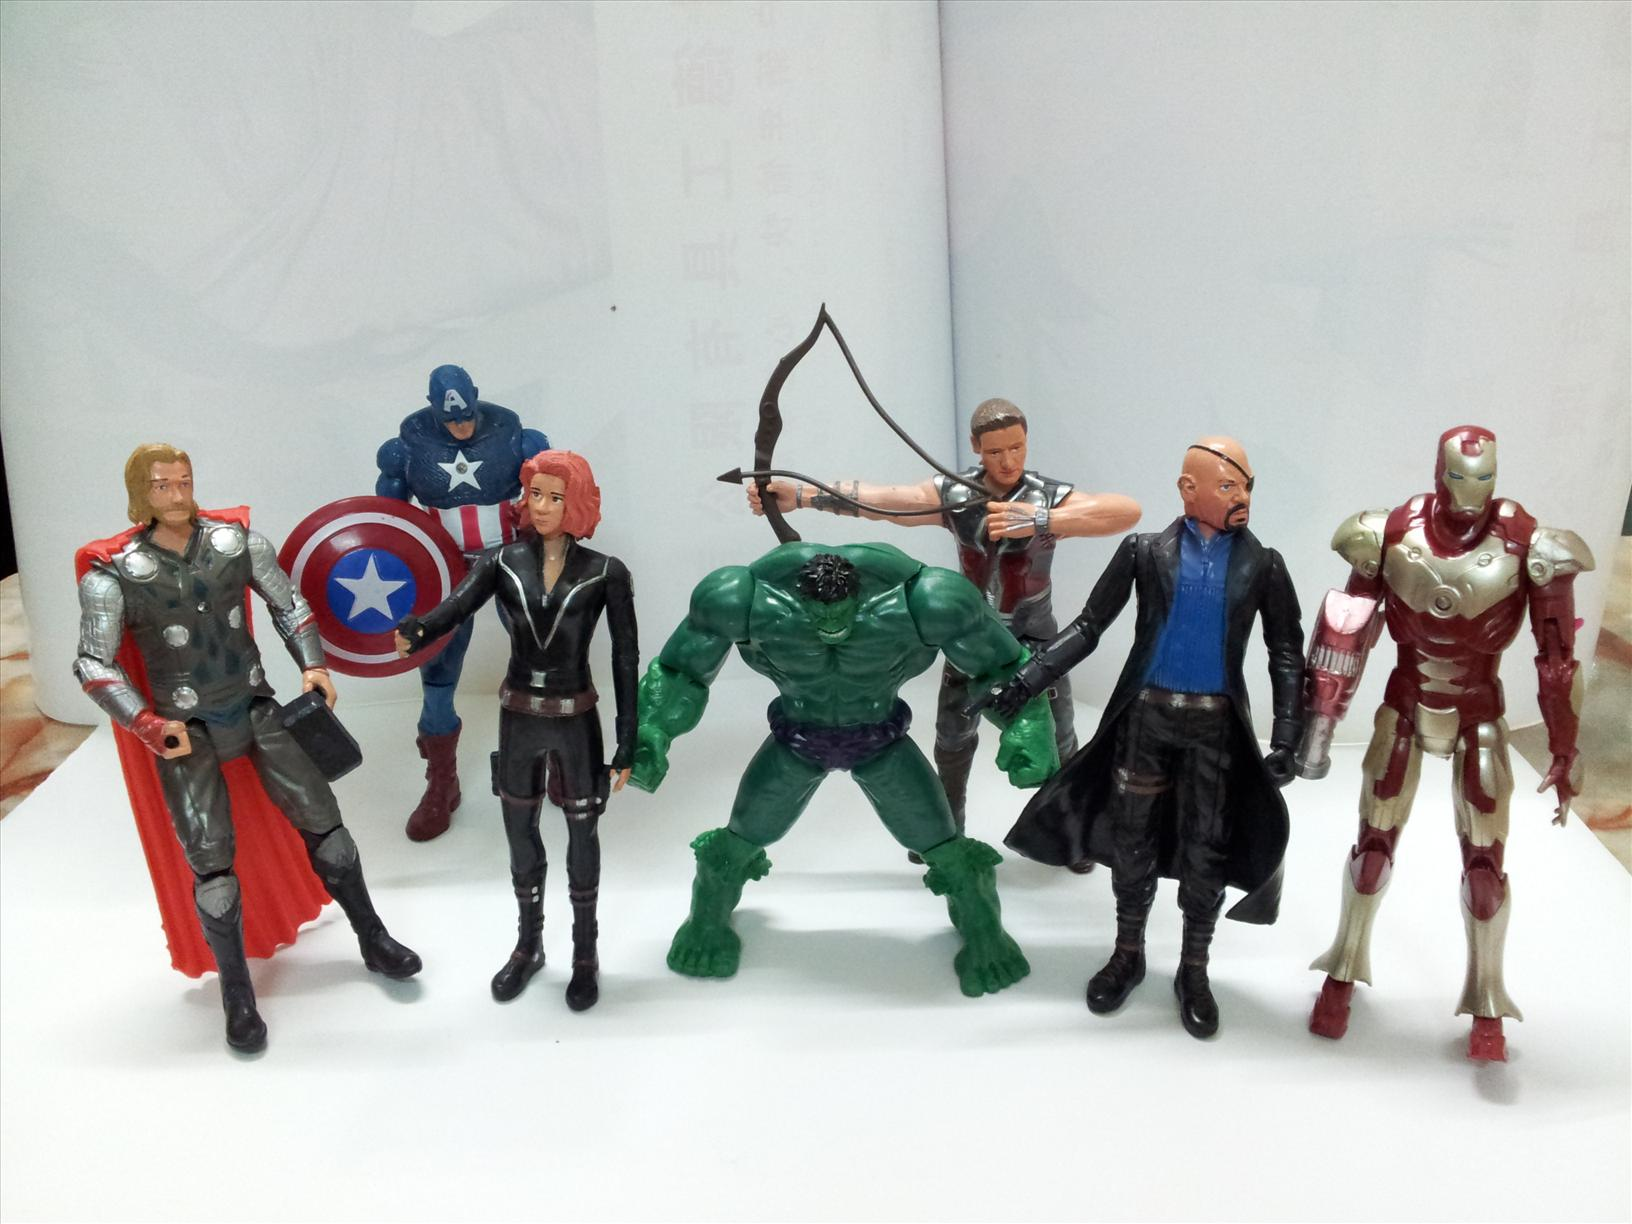 Marvel Avengers Action Figures 7pcs Set